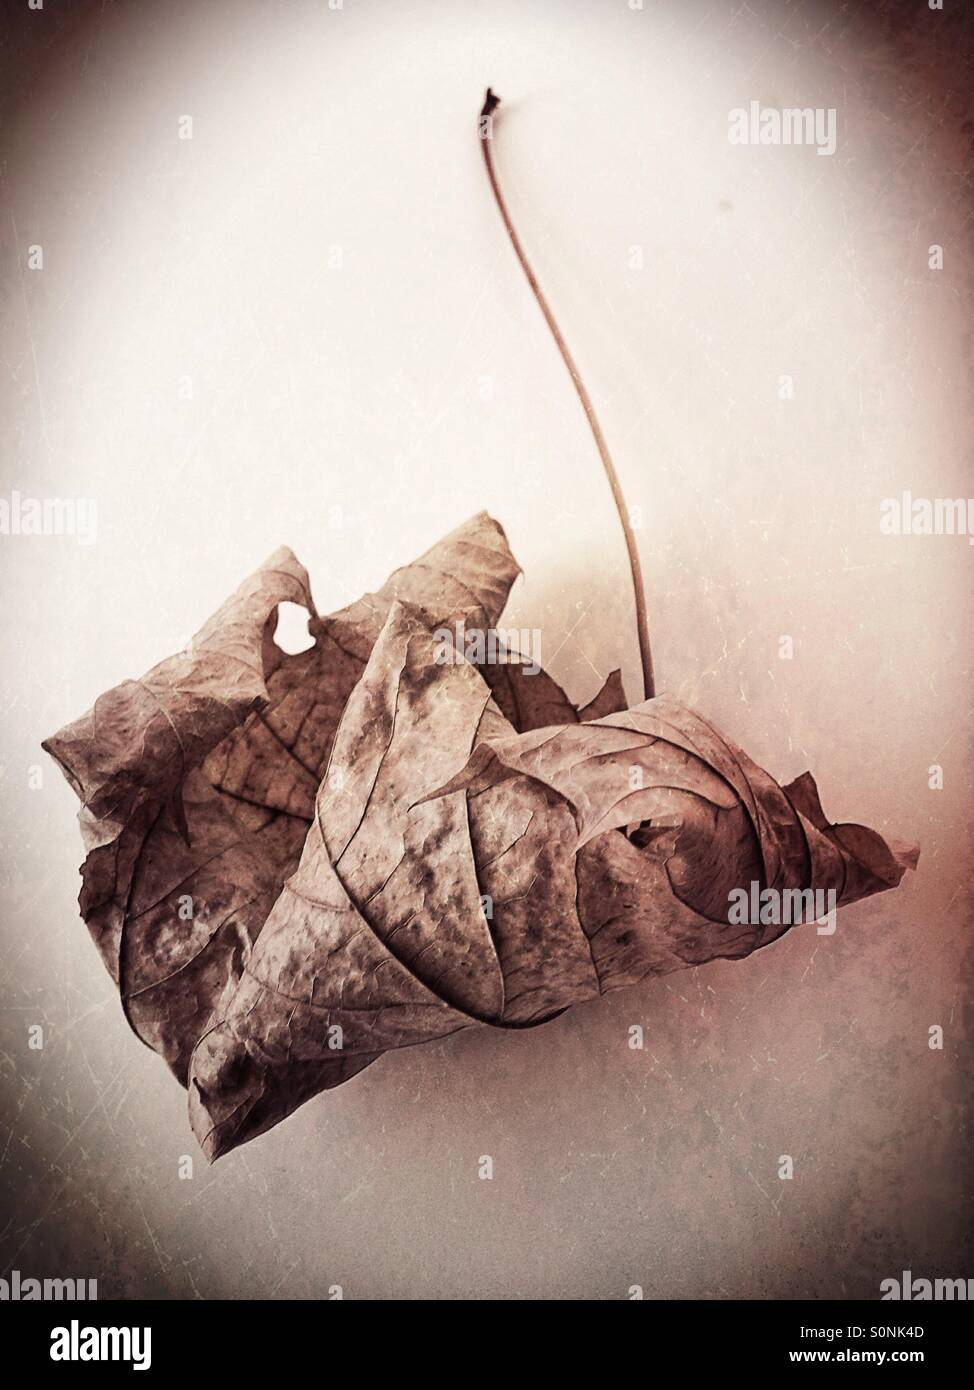 A dry, dead leaf. - Stock Image